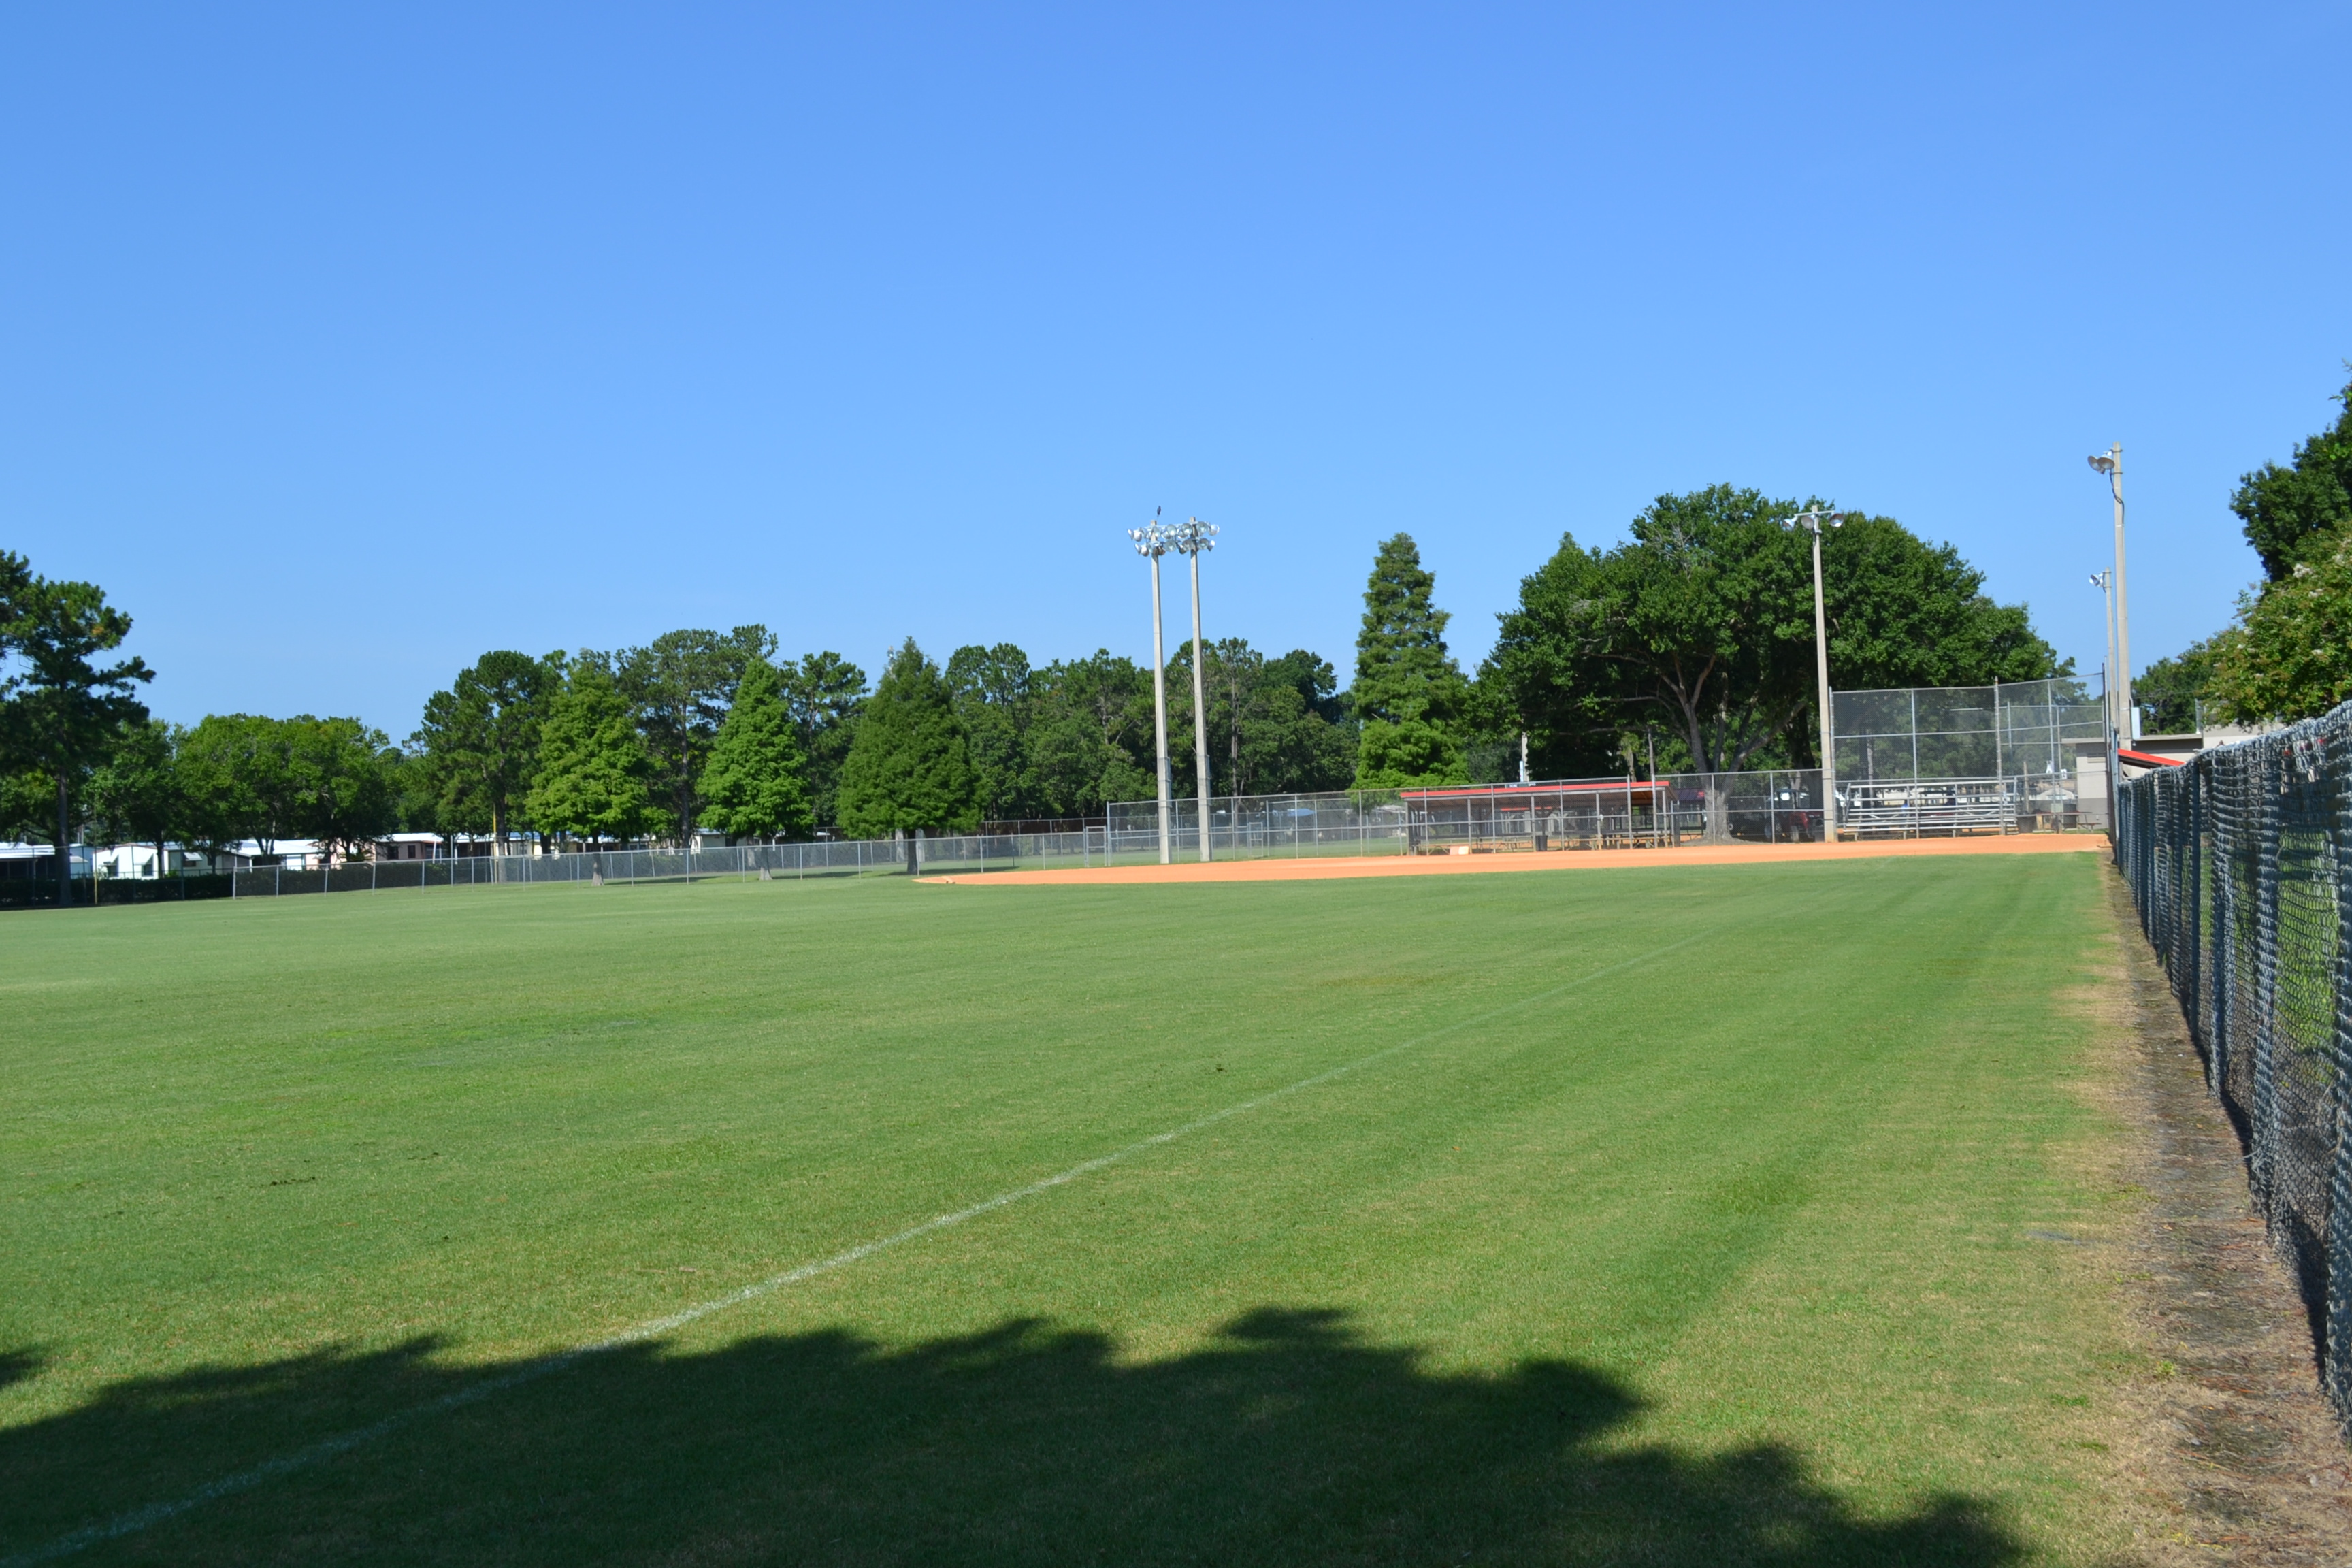 A softball field at the Southwest Complex